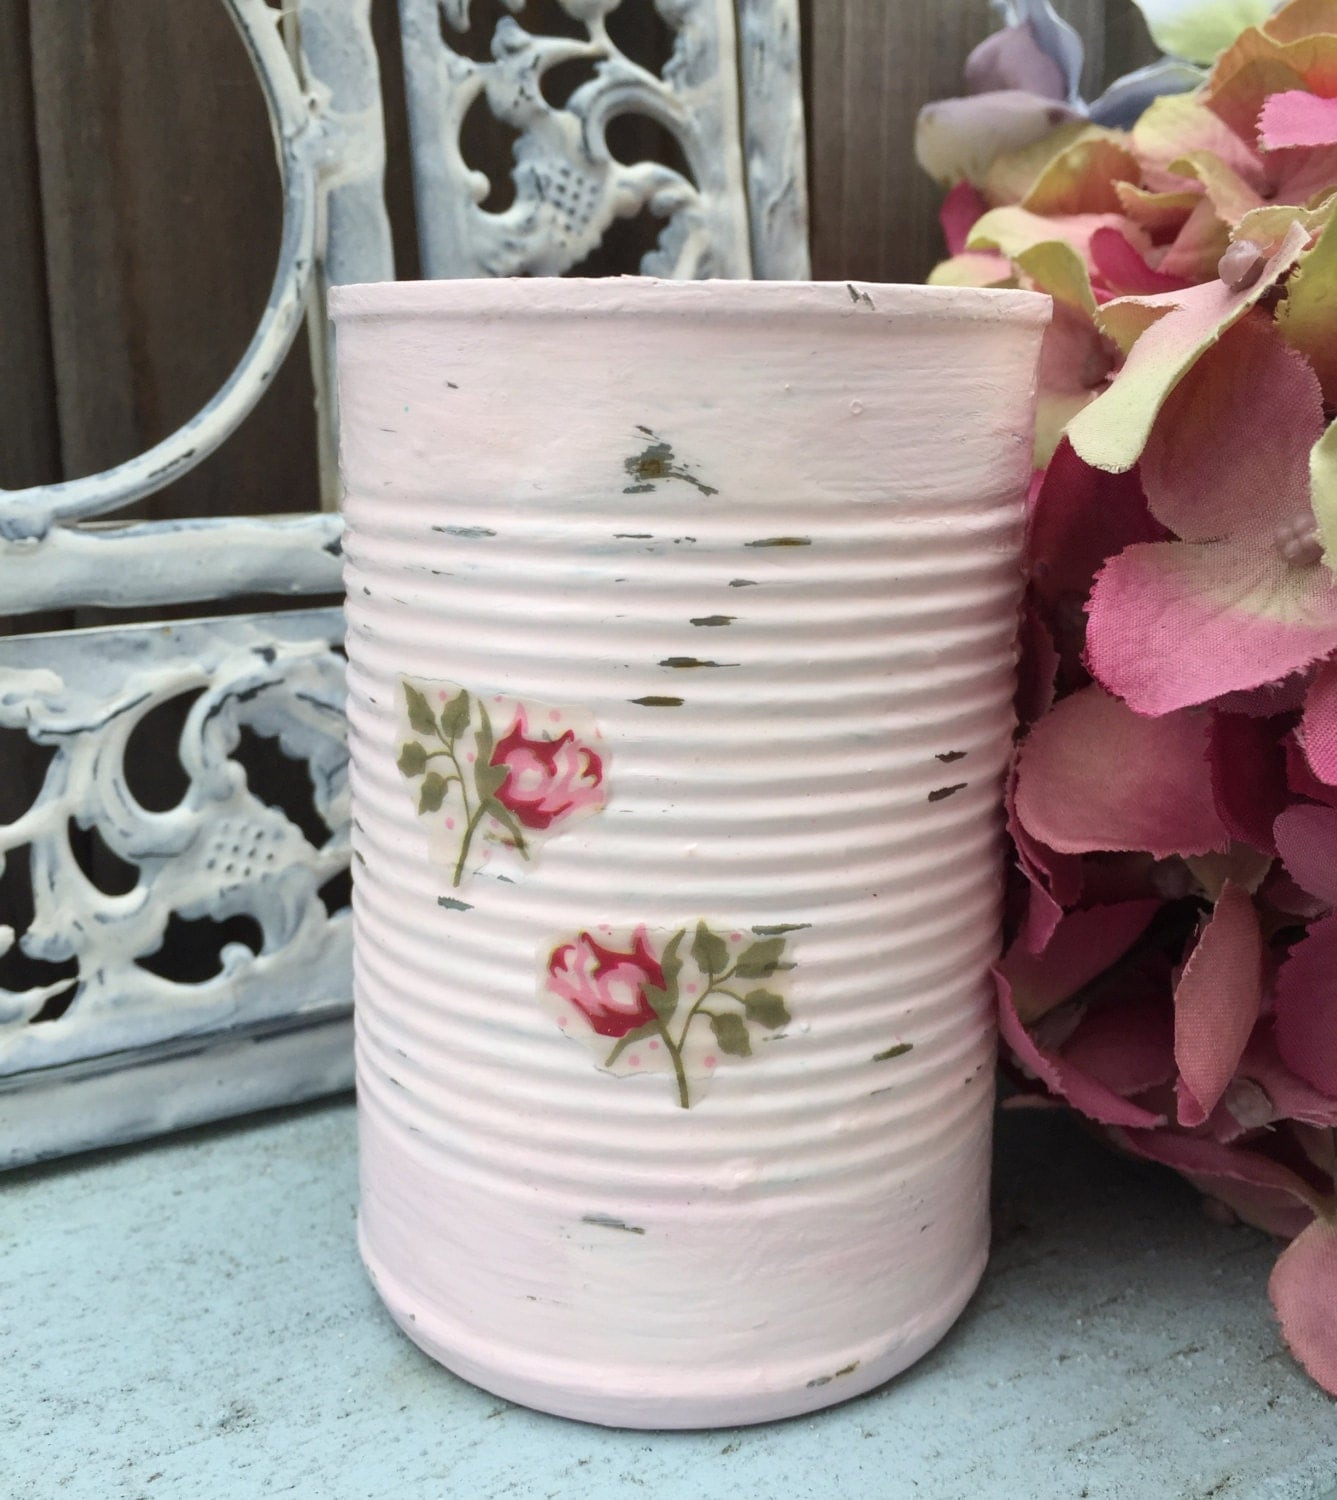 Pink Shabby Chic Painted Decoupage Roses Tin Can Vase Table Centerpieces  Bridal Wedding Home Dorm Nursery Decorations Decor Gift IN STOCK - Pink Shabby Chic Painted Decoupage Roses Tin Can Vase Table